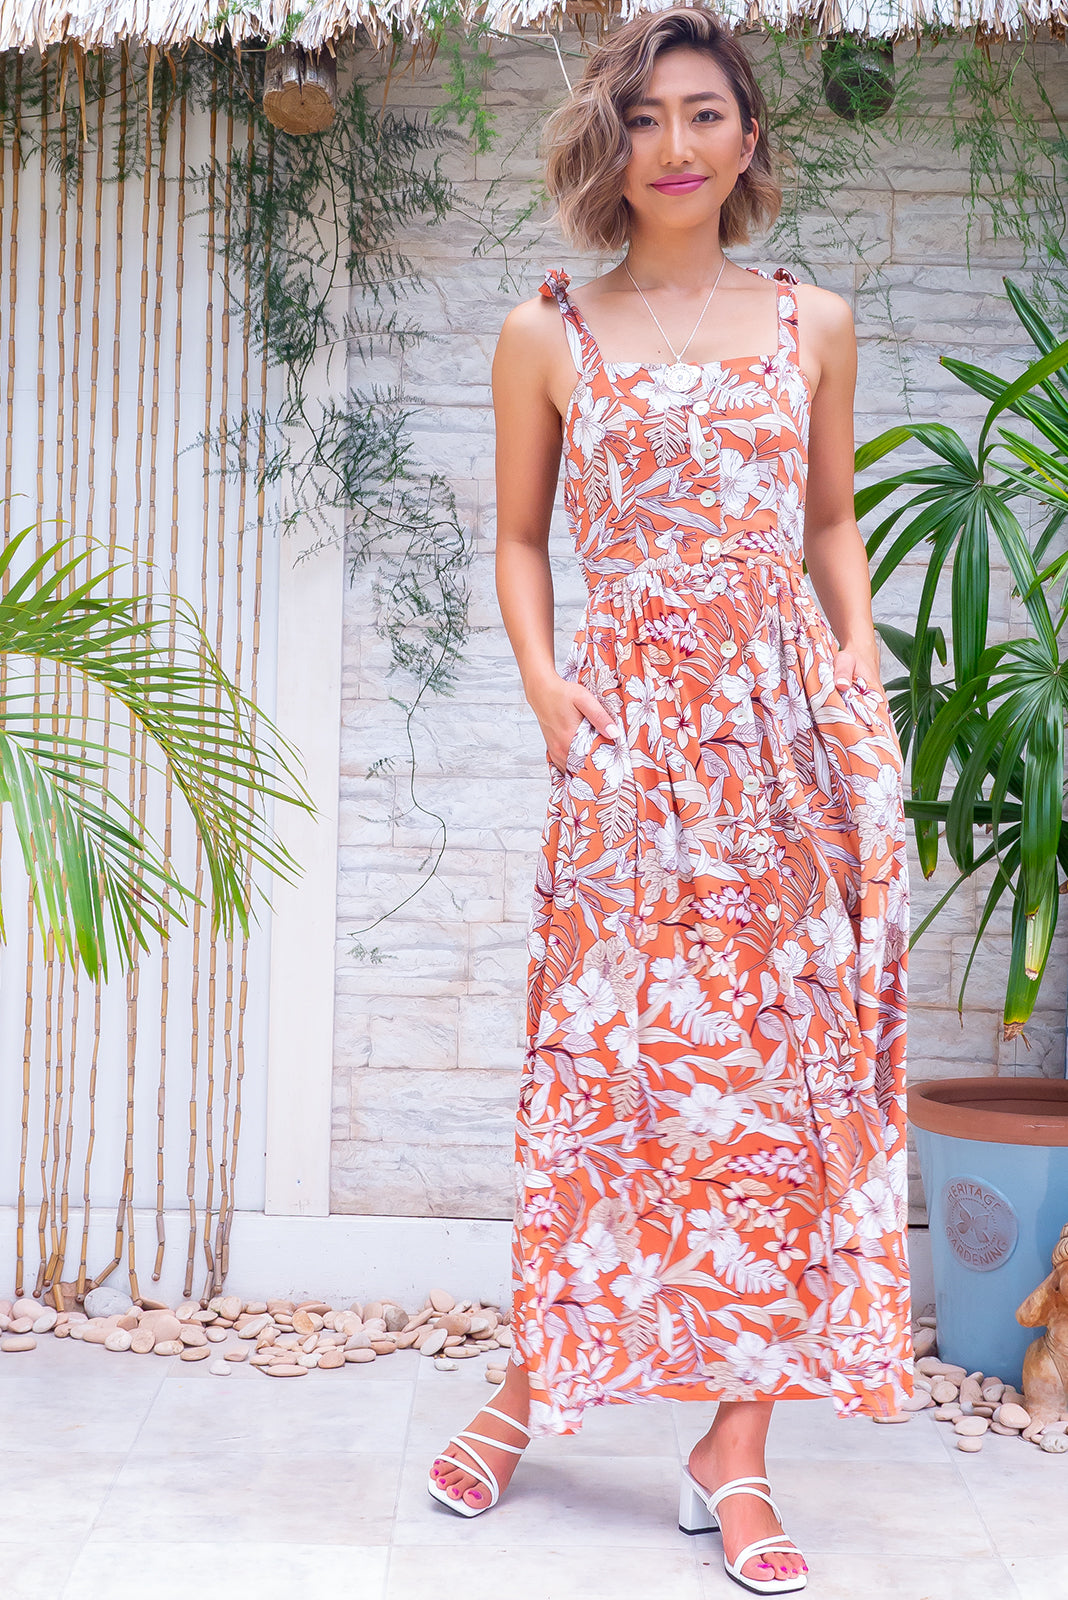 The Midsummer Terracotta Siesta Dress features straight neckline, tie up shoulder straps, side pockets, elasticated waist back and 100% viscose in terracotta base with beige and cream tropical print.